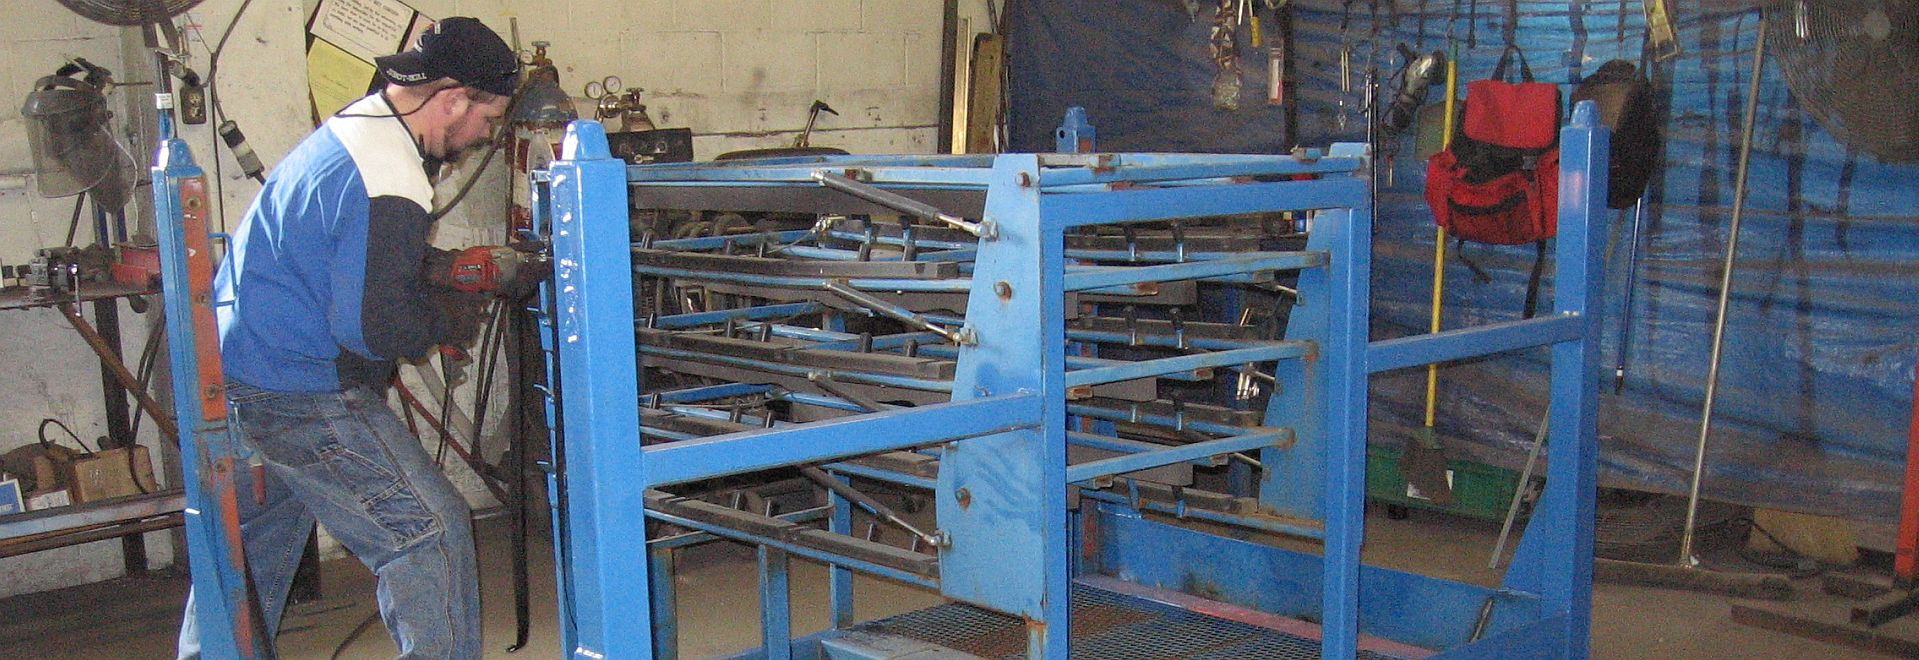 Hays Fabricating can repair your returnable shipping racks, baskets and carts at a far cheaper price than replacing them.